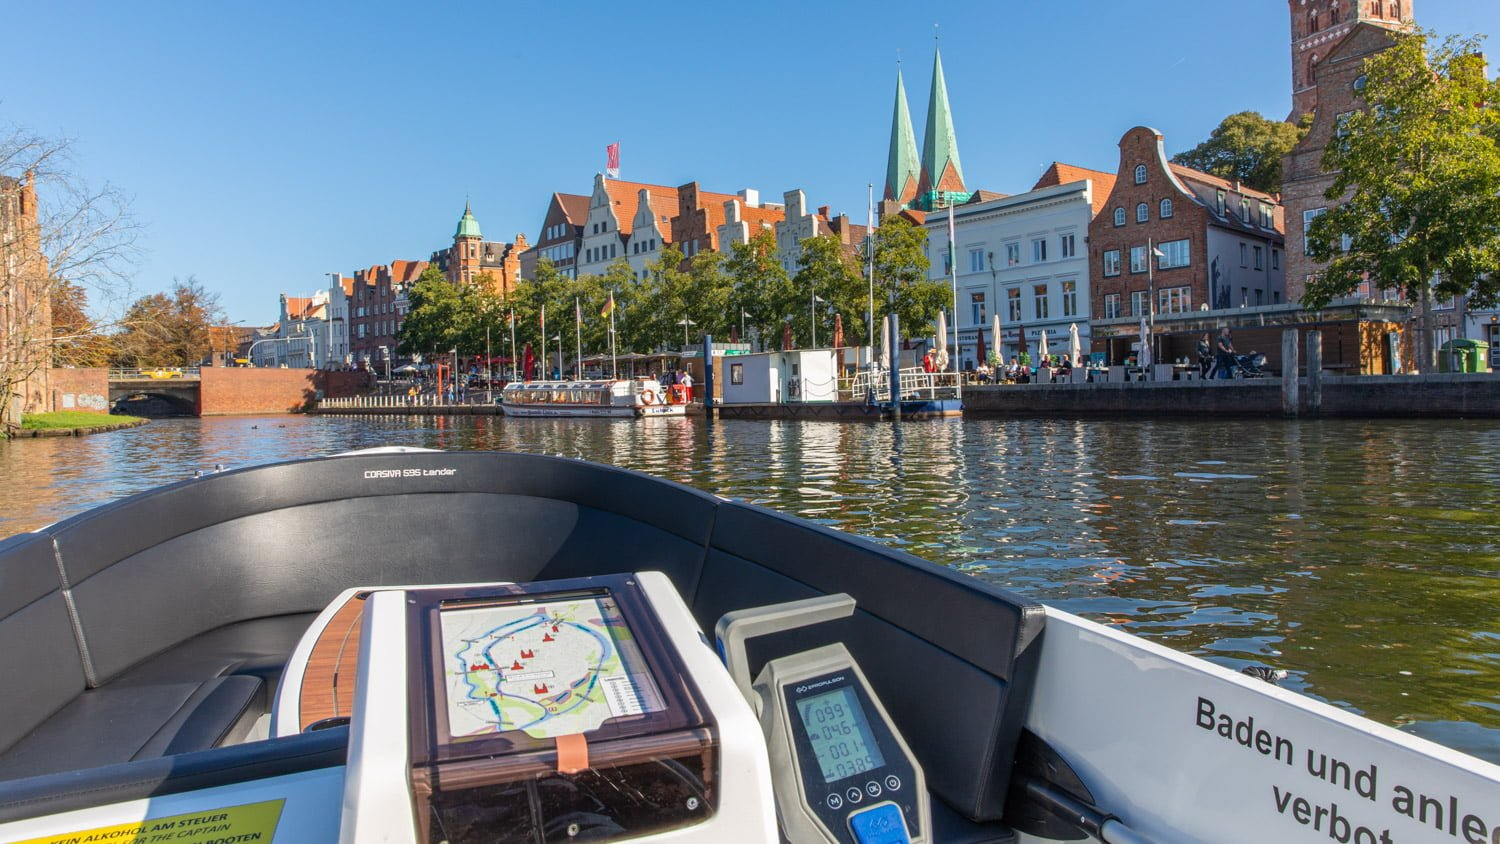 Boat tour around Old Town